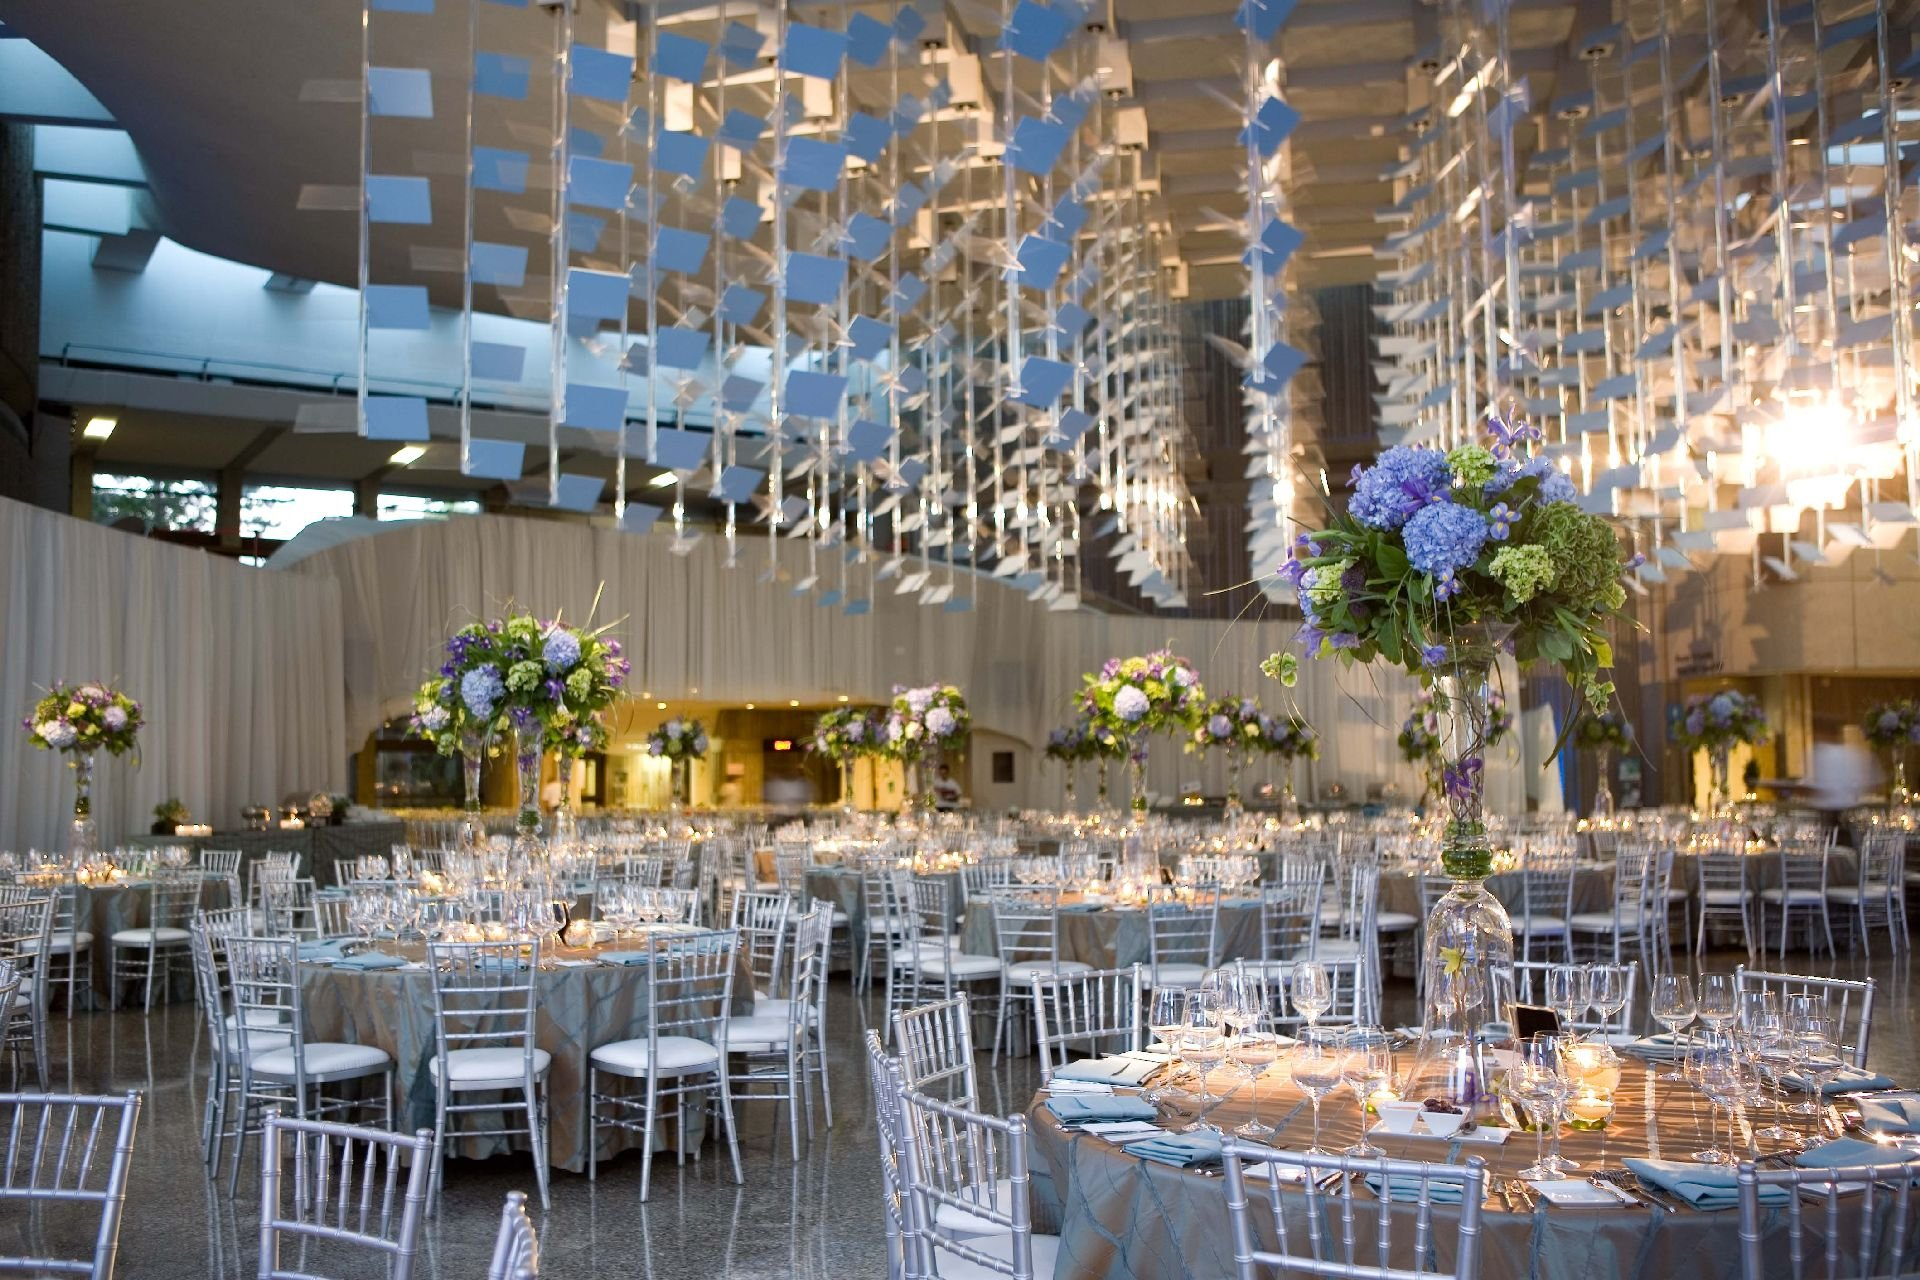 5 unique wedding venues you need to see for yourself for Unique places to have a wedding